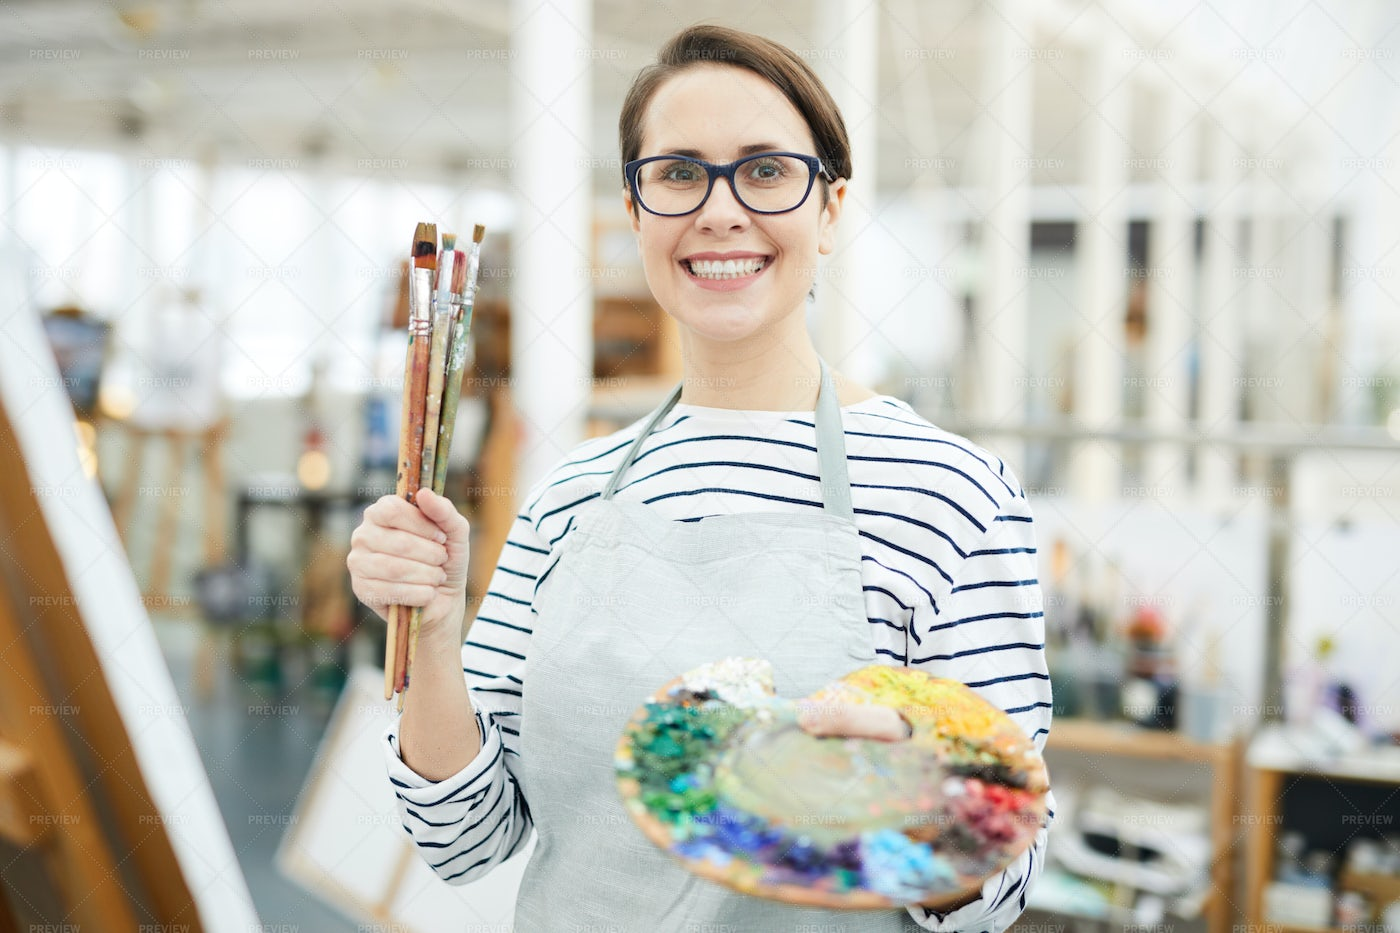 Smiling Female Artist Holding...: Stock Photos